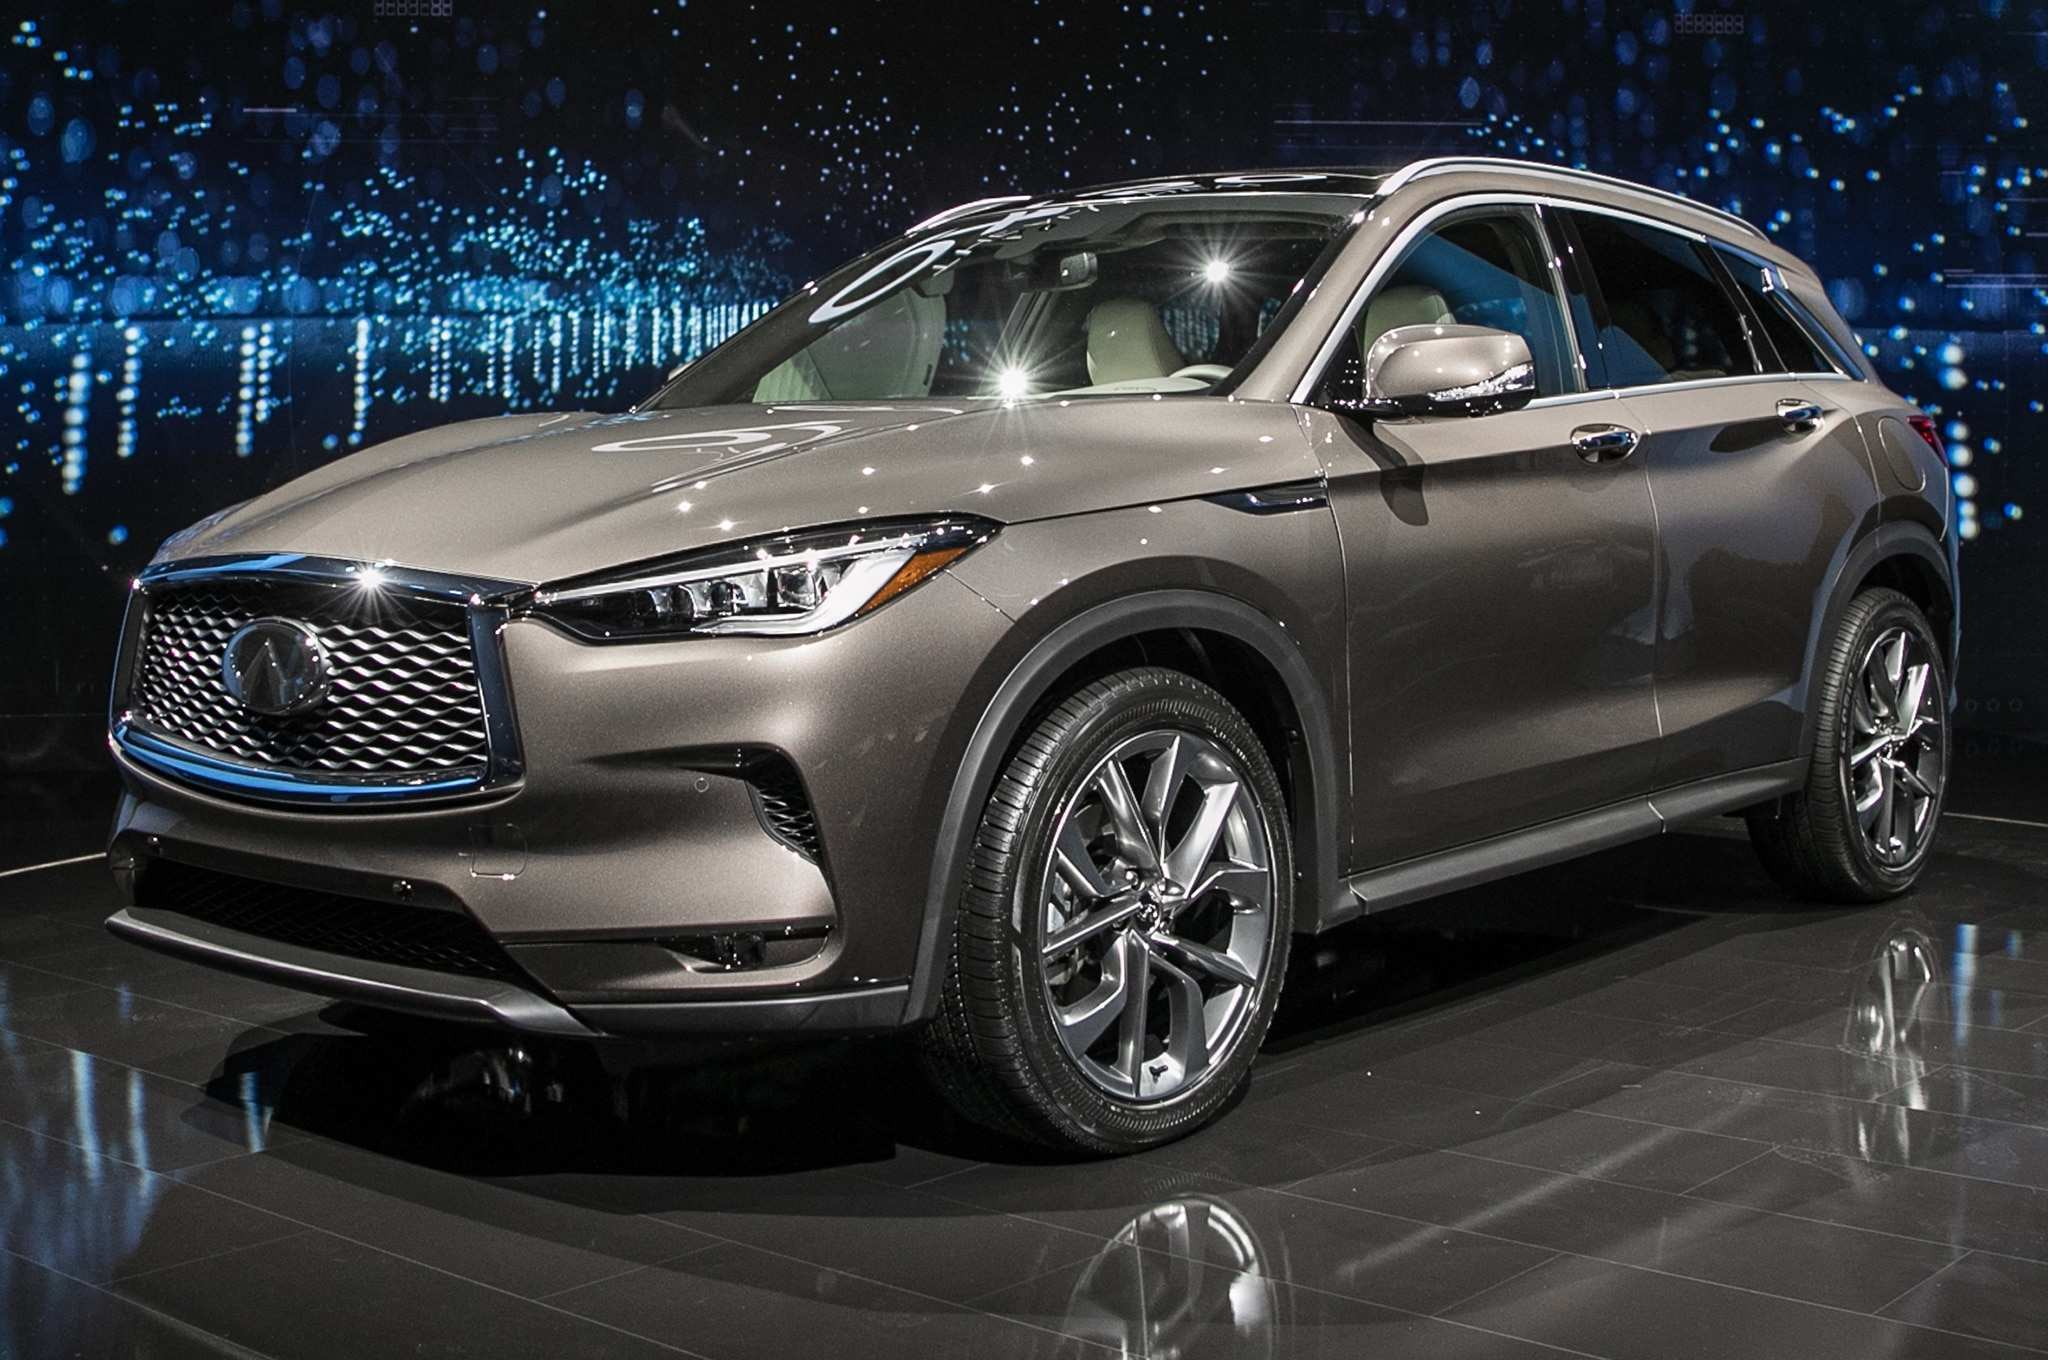 53 Great 2019 Infiniti Truck Rumors with 2019 Infiniti Truck